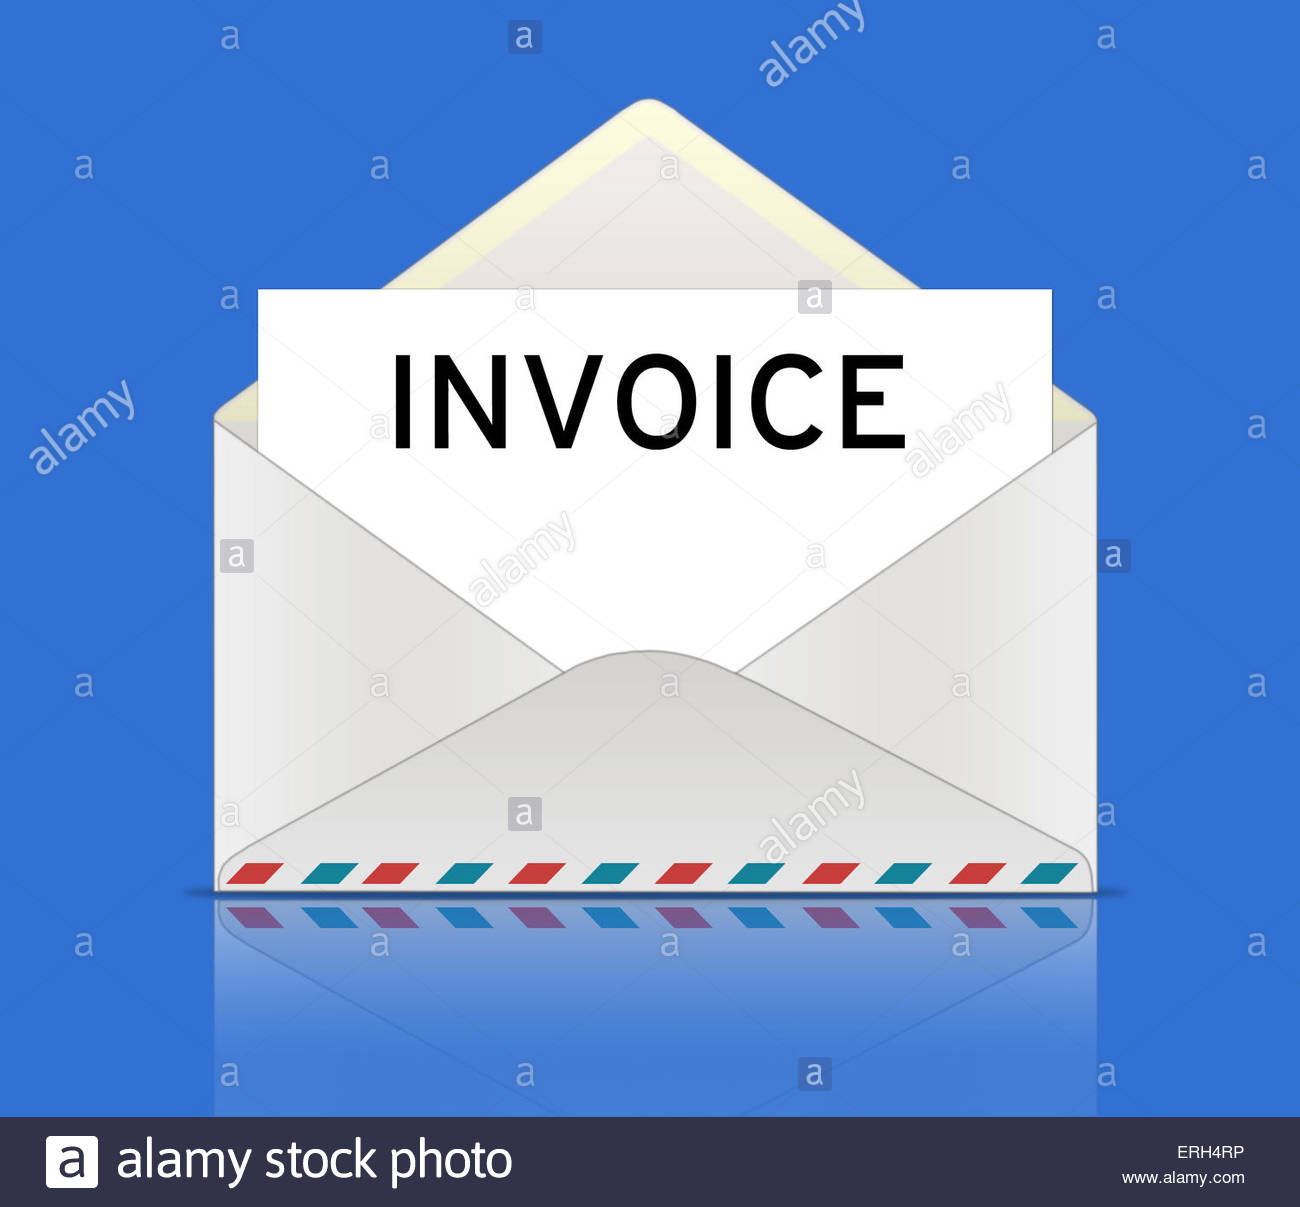 Invoice Letter Photos Invoice Letter Images Alamy